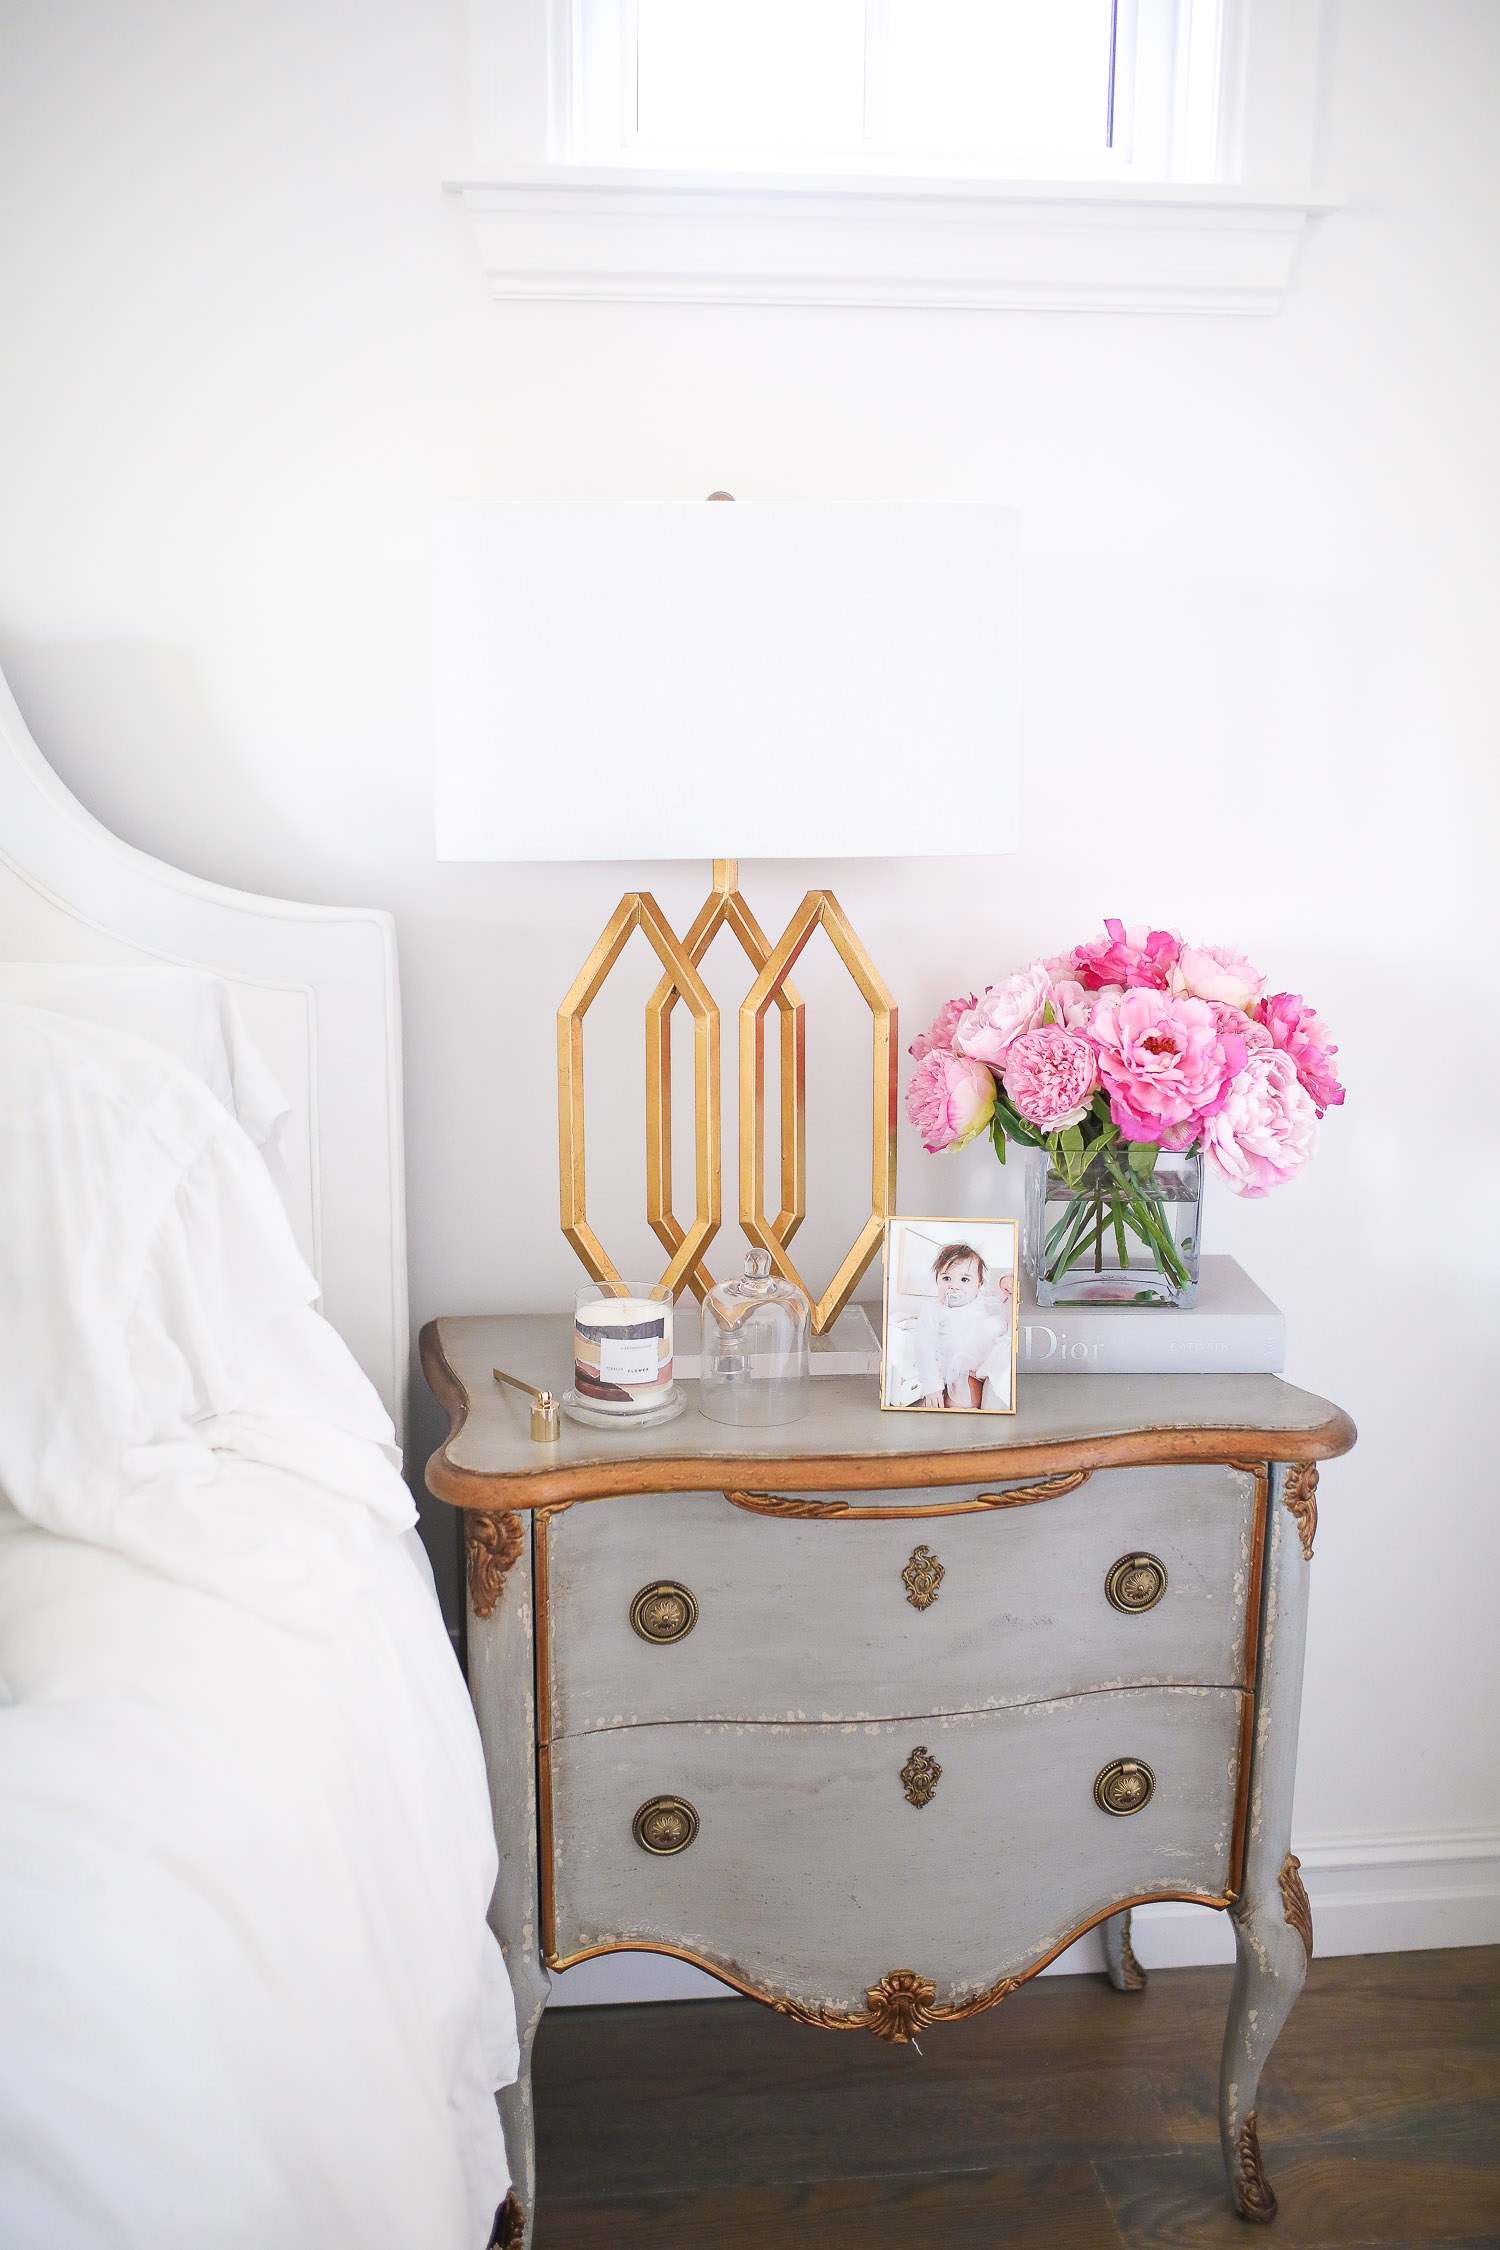 Barefoot dreams blankets, spring gift ideas 2020, commando butter bra reivew, see by chloe wedges, nordstrom must haves spring 2020, emily gemma | Things That Make Me Happy by popular US lifestyle blog, The Sweetest Thing: image of a grey night stand with a gold lamp, gold picture frame, candle, and vase of pink flowers on top.